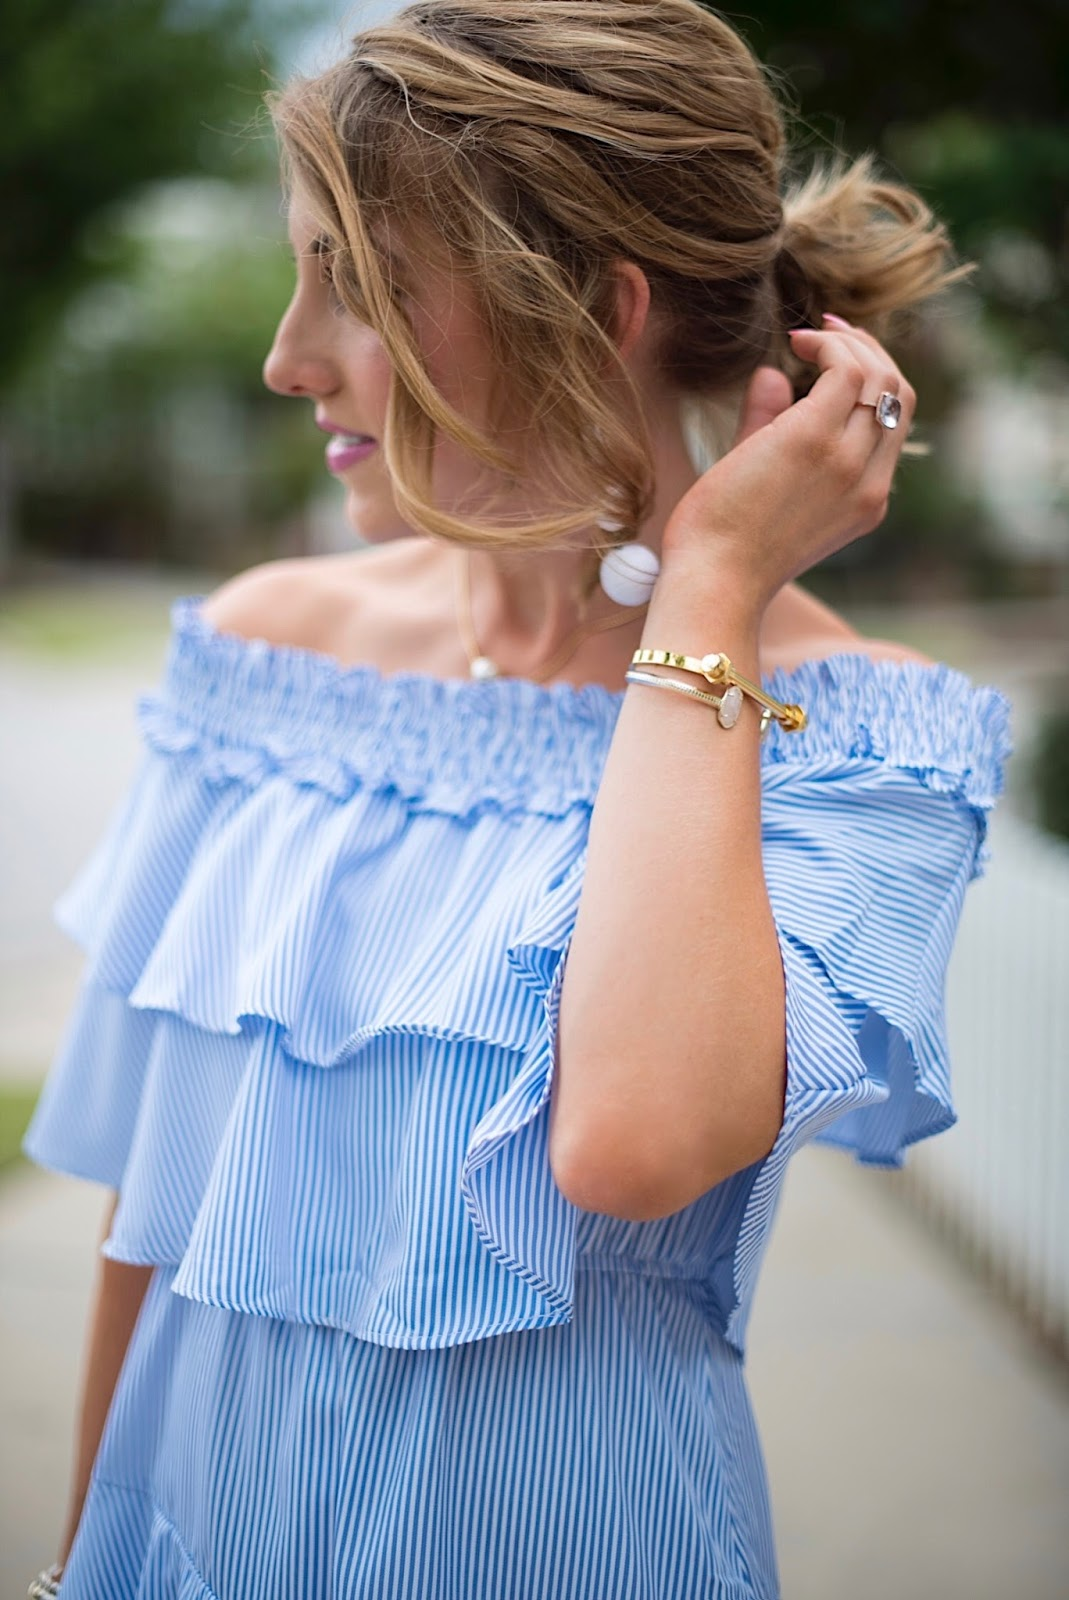 Ruffle Dress - Click through to see more on Something Delightful Blog!